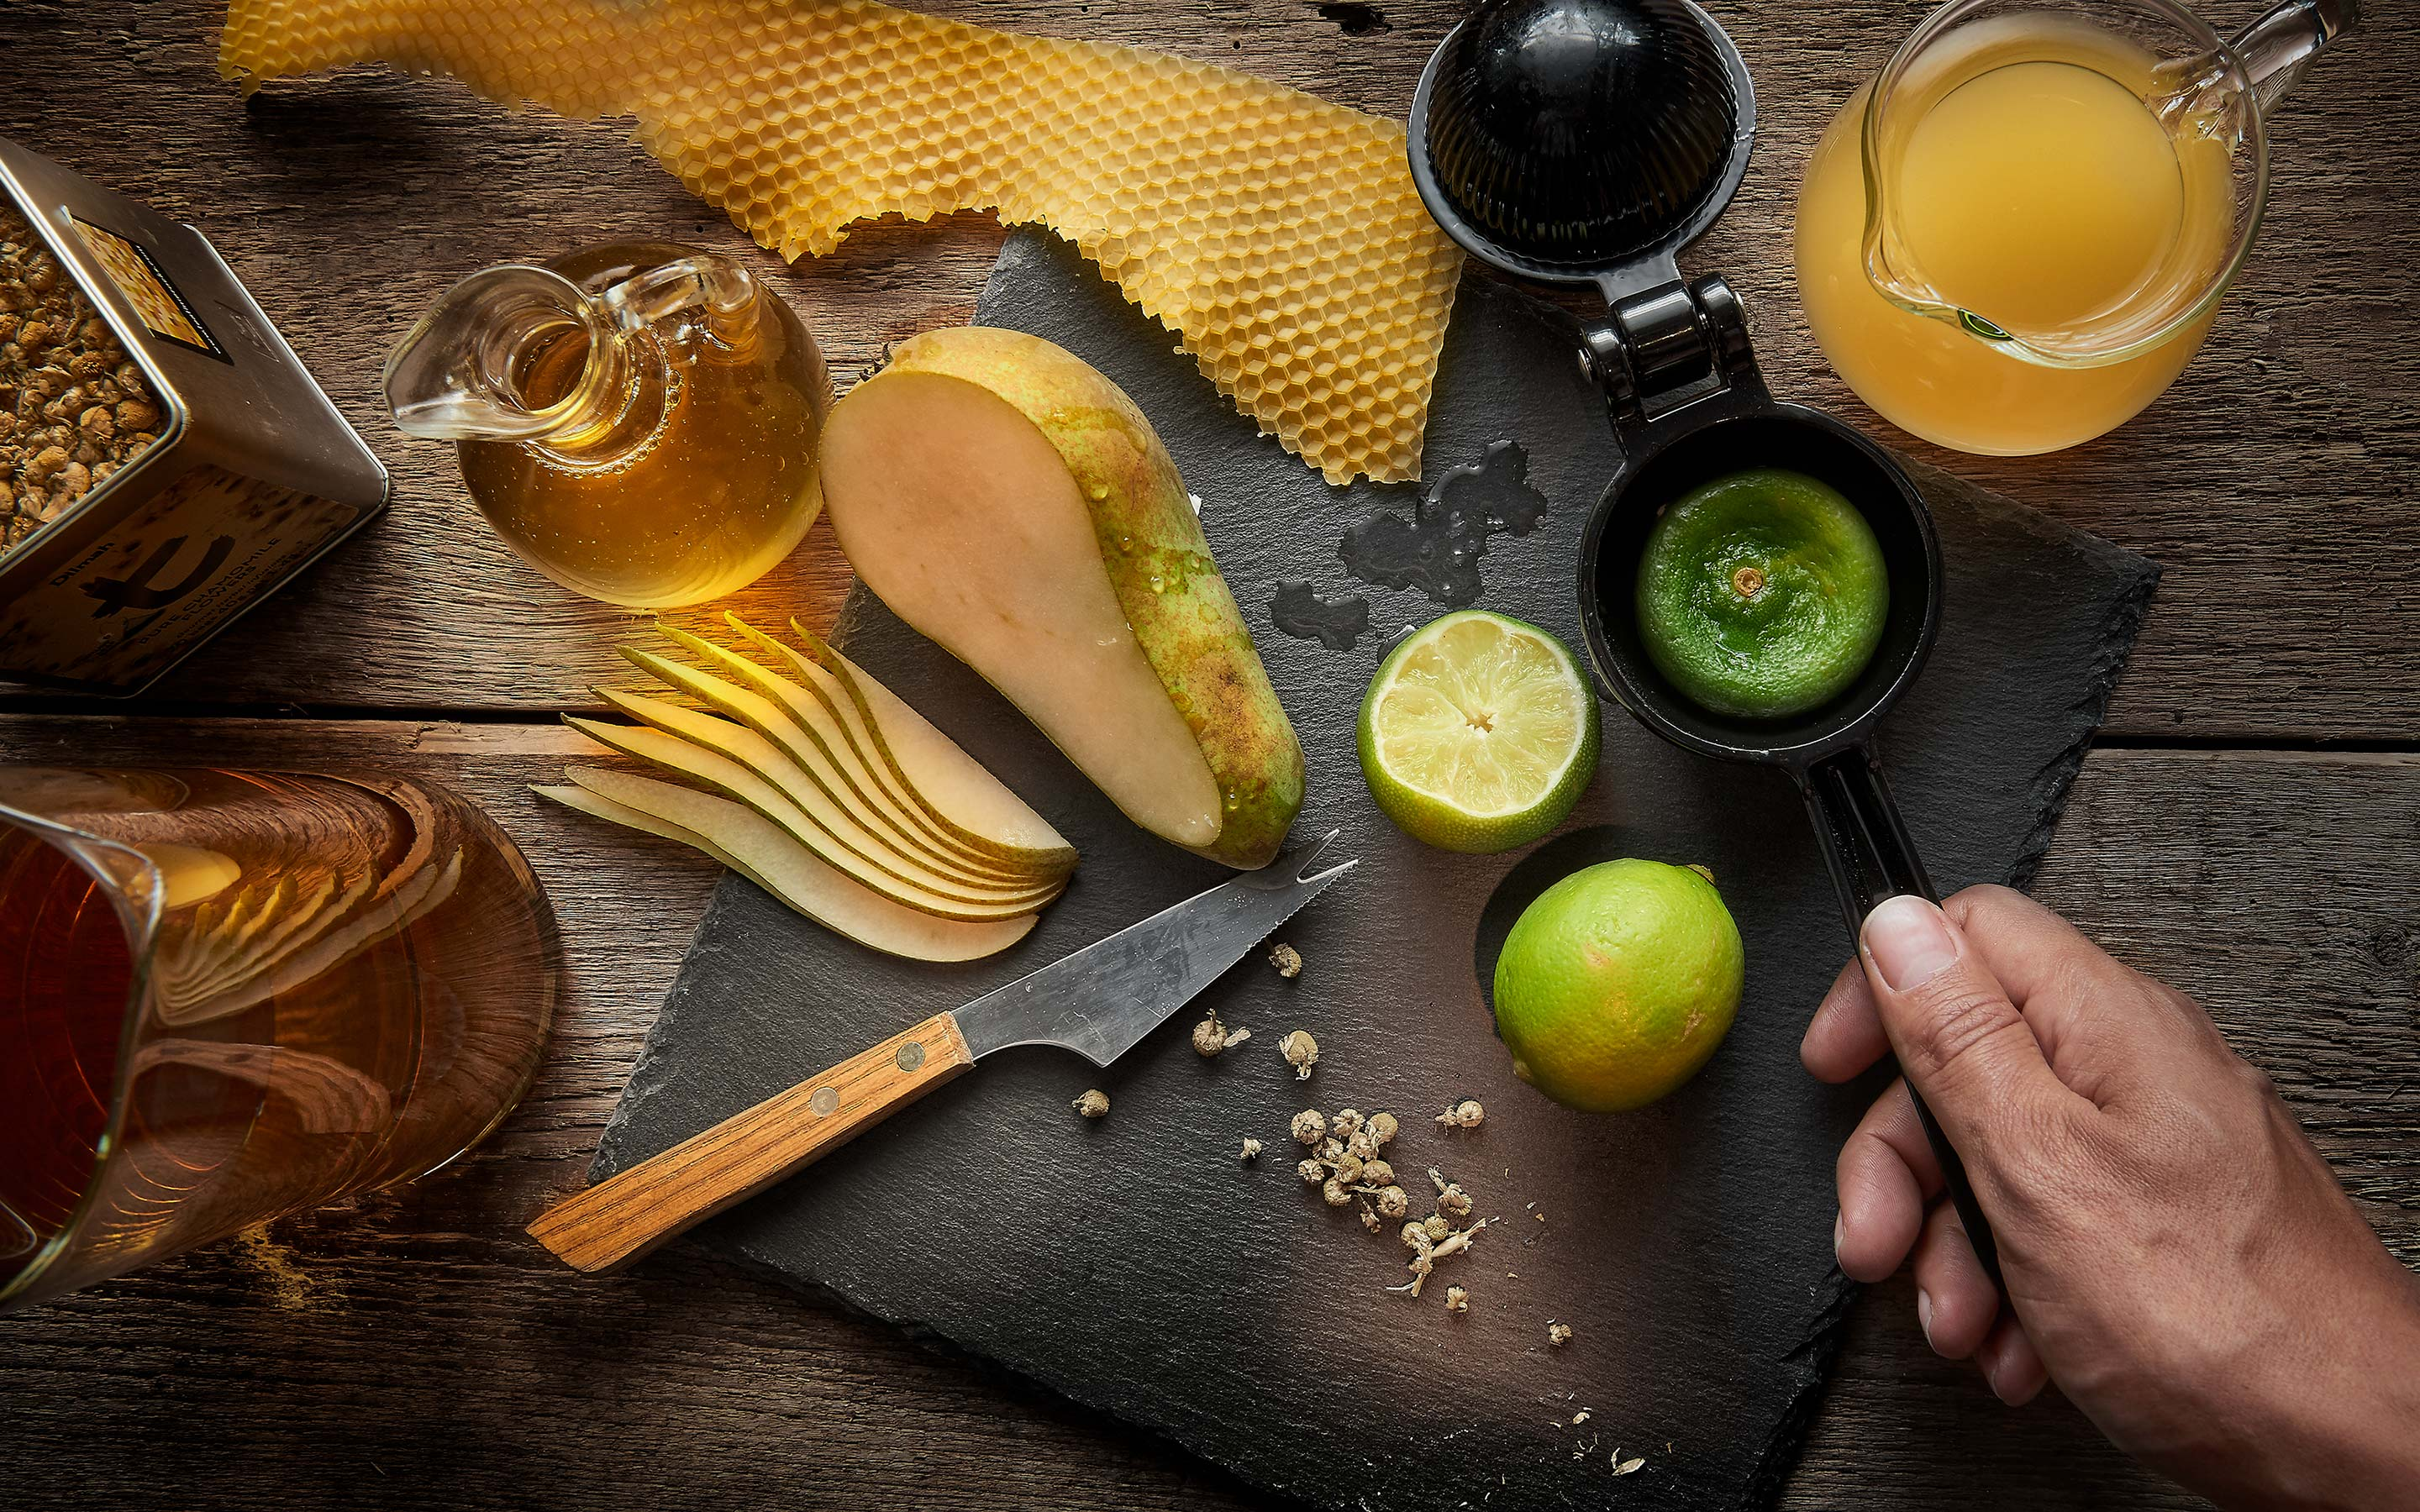 culinaire-fotografie-punch-ingredienten